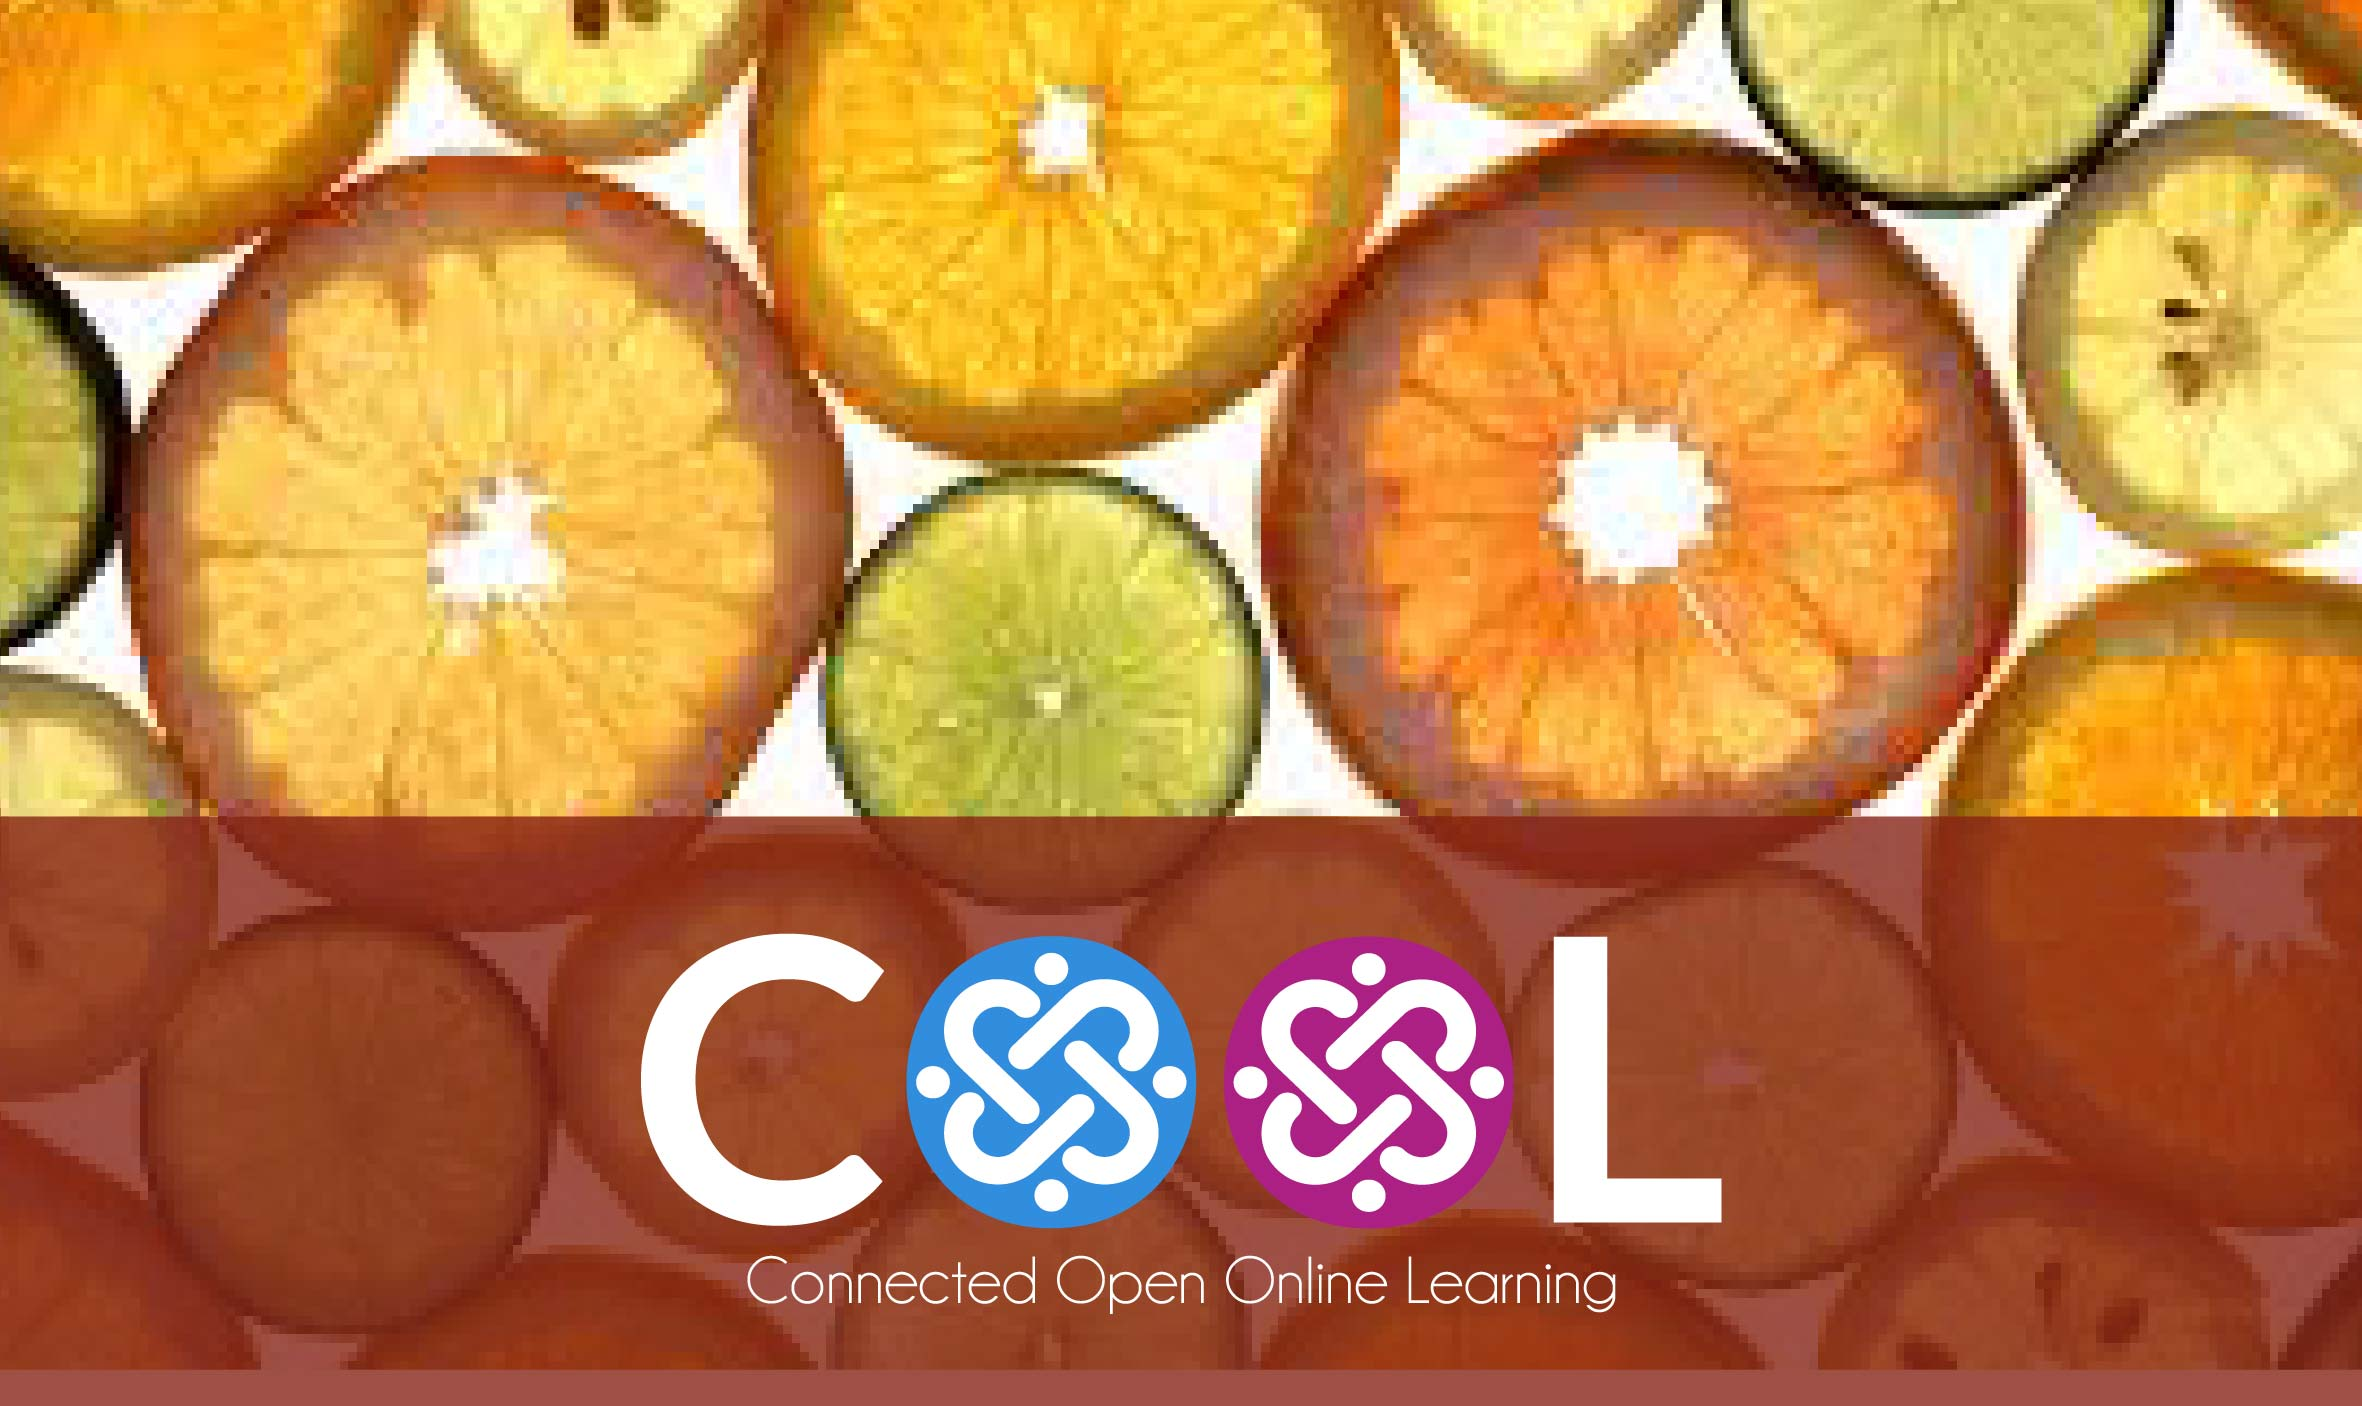 COOLMATH01 - Resources for Maths Education - 2020 English 2020_MATH_EN_COOL01